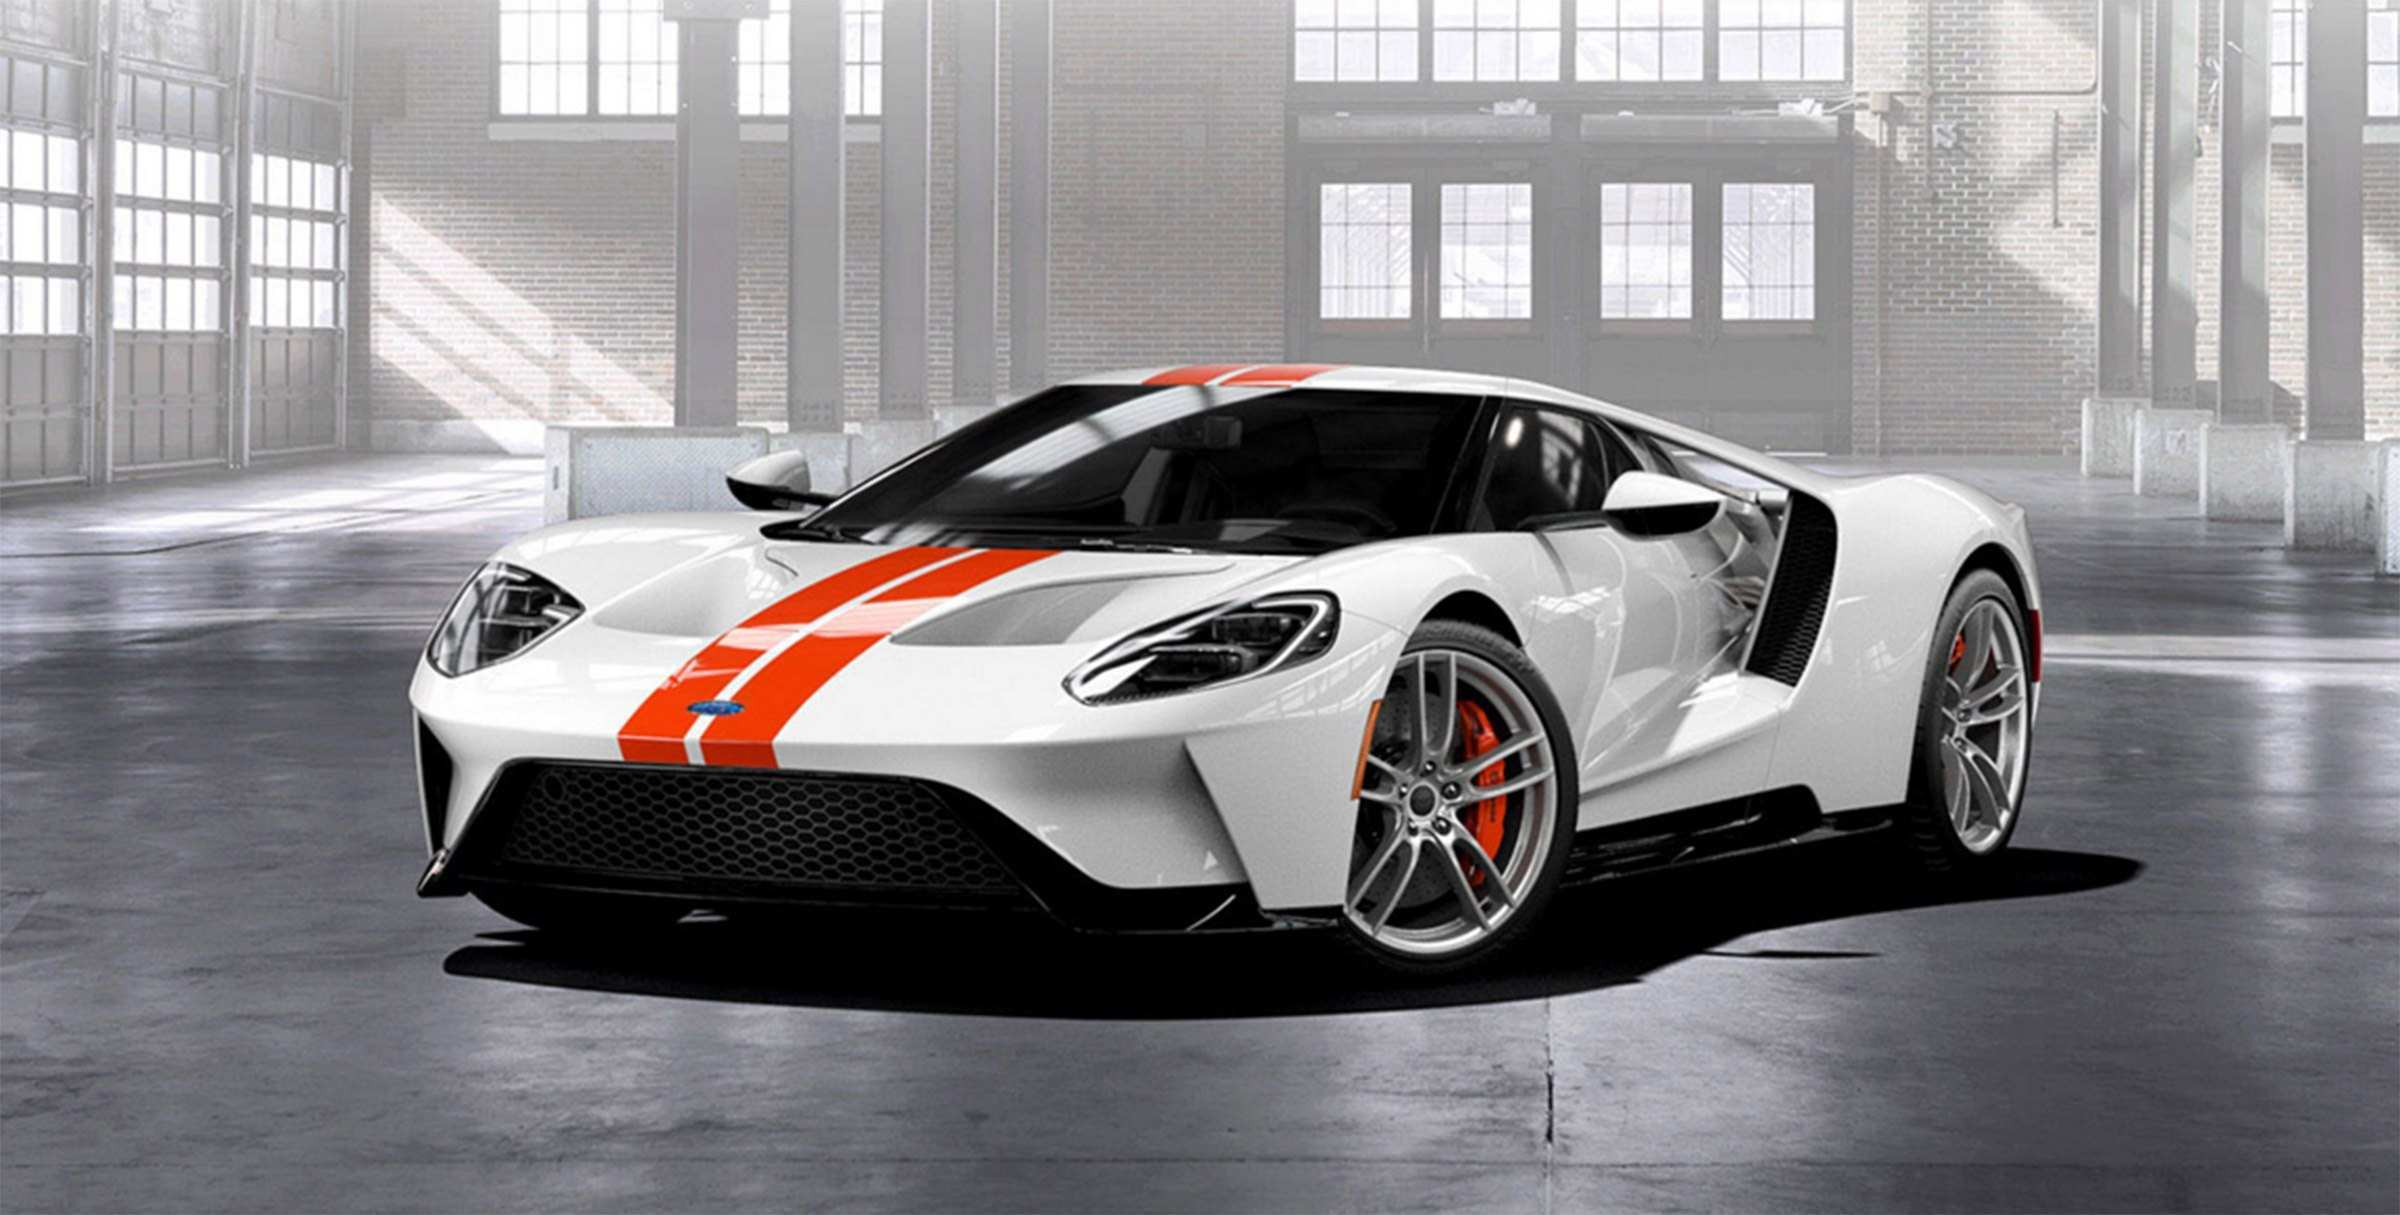 95 All New 2020 Ford Gt Supercar Rumors with 2020 Ford Gt Supercar